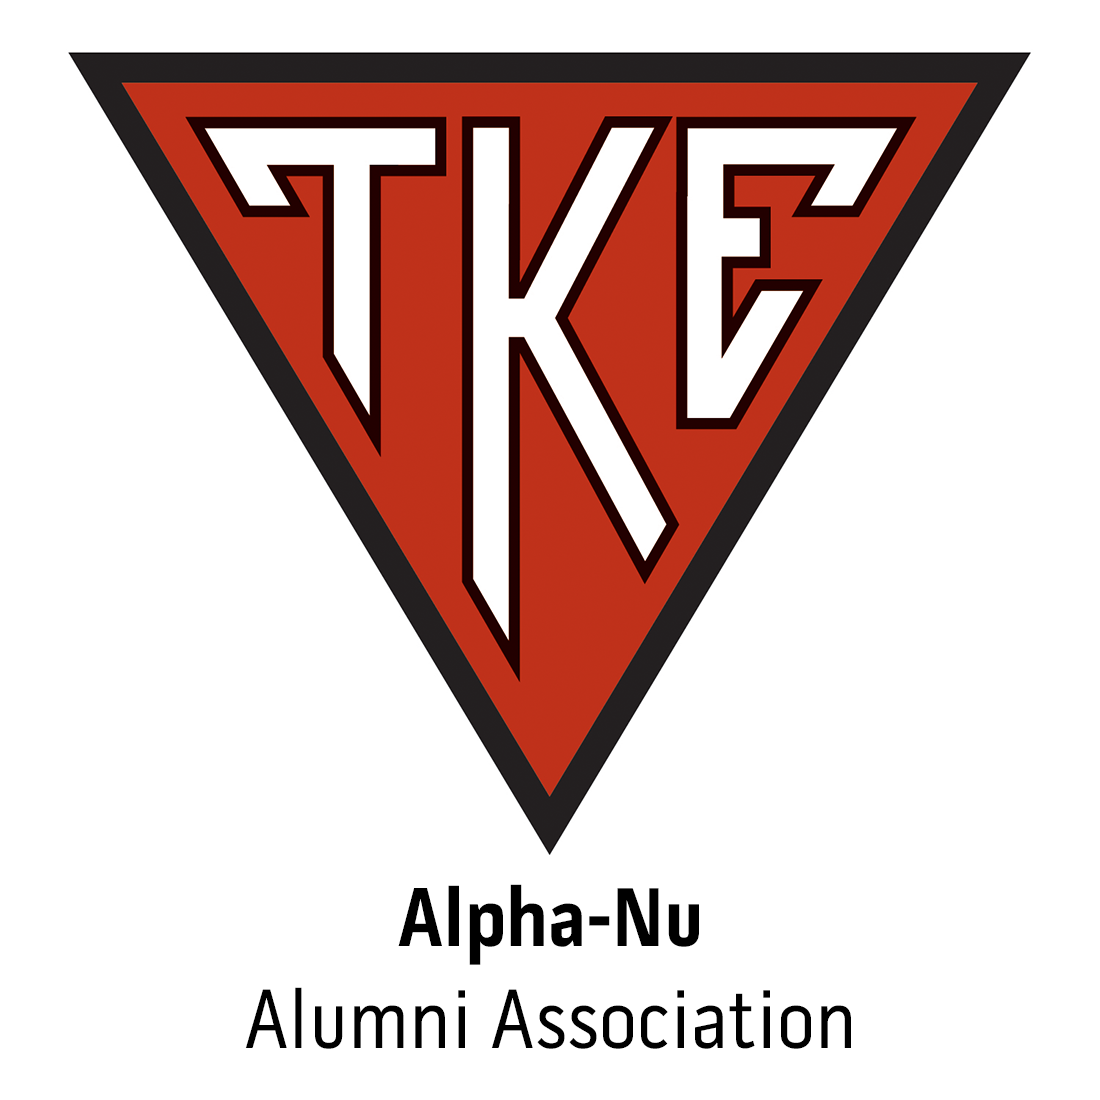 Alpha-Nu Alumni Association at University of New Hampshire